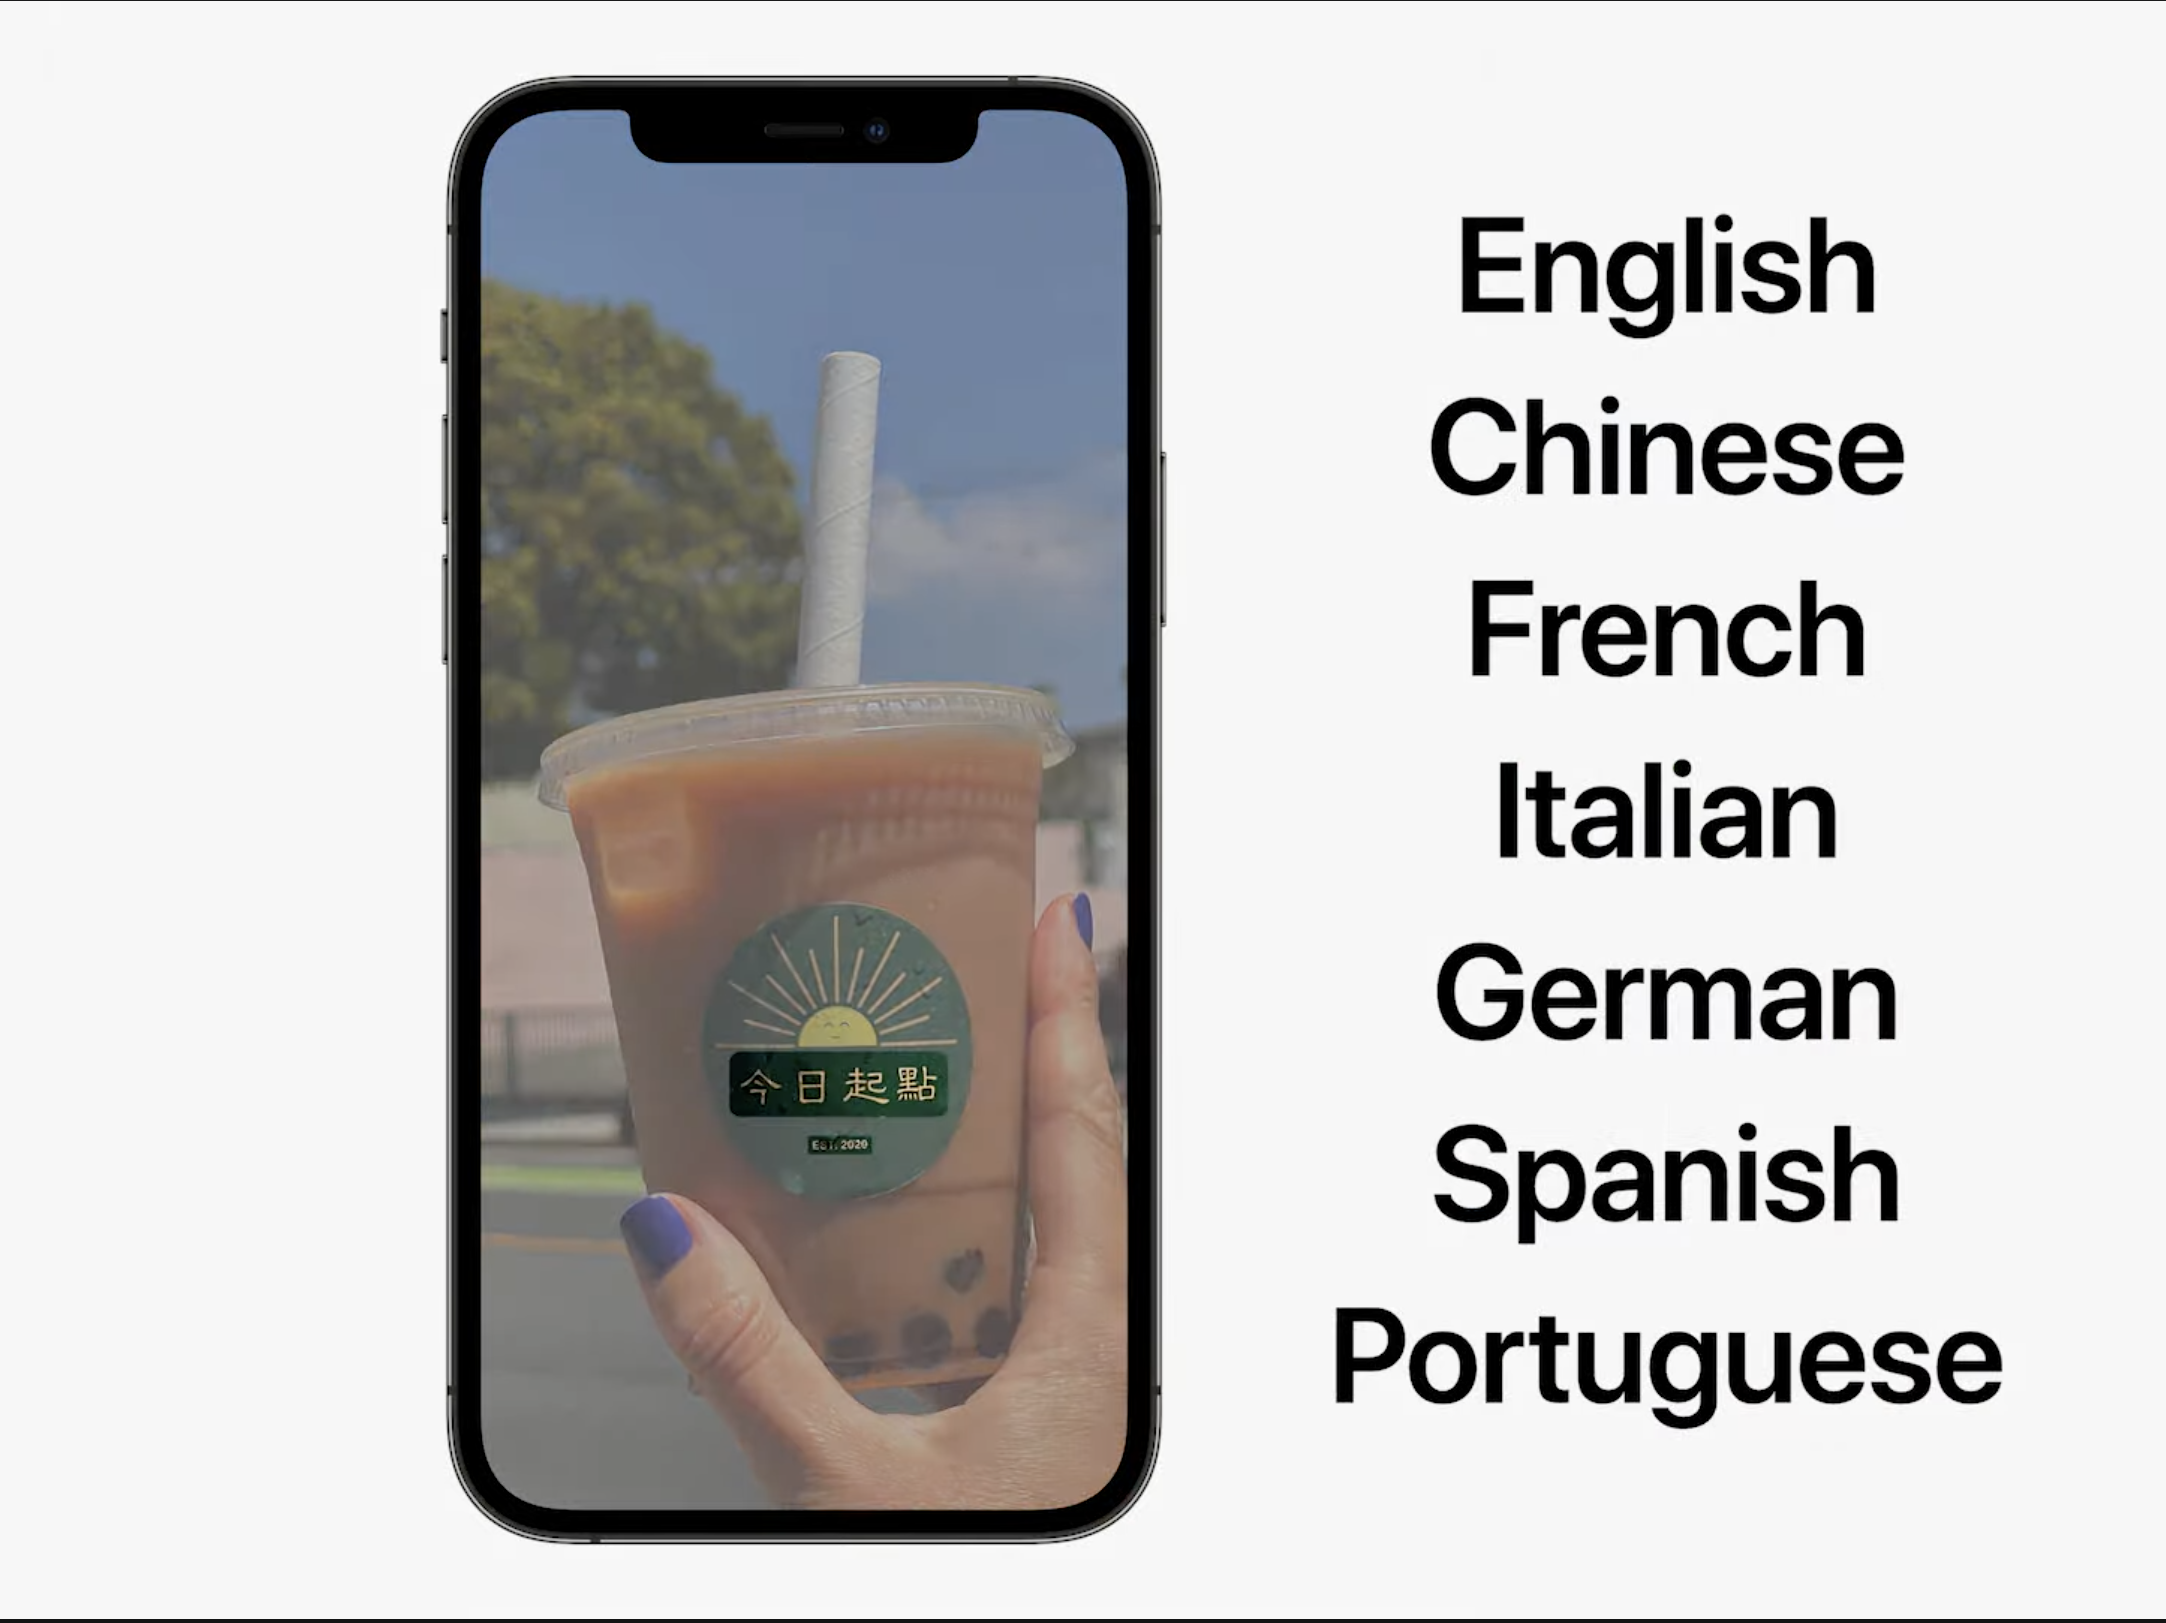 The new Live Text feature in camera translating the words on a cup. Live Text can translate between English, Chinese, French, Italian, German, Spanish, and Portuguese.